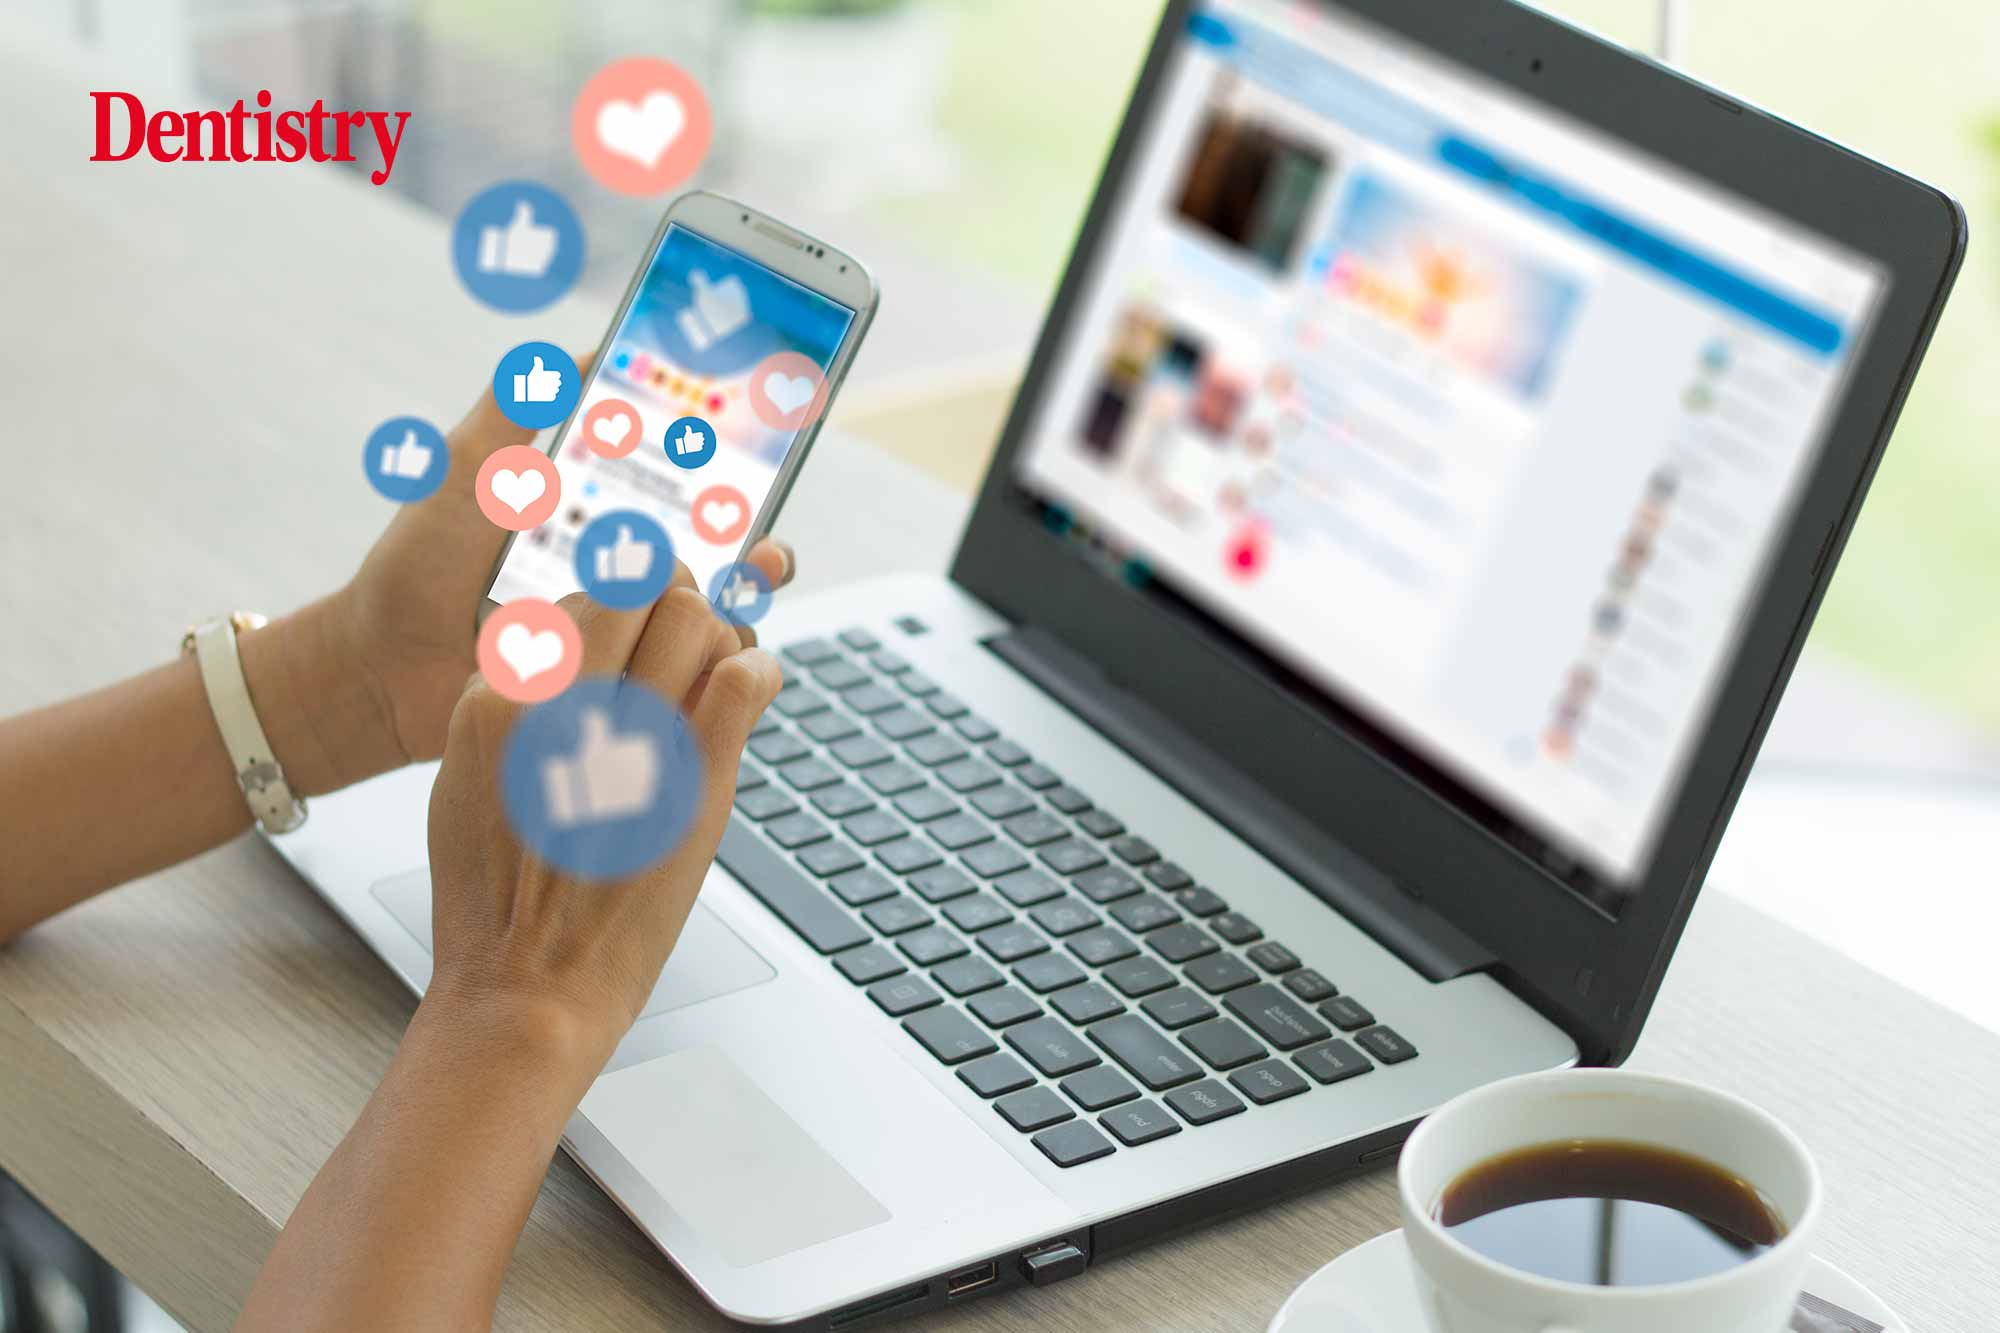 Nilesh Parmar discusses how integral social media has become in dentistry and how practices can use it to their benefit